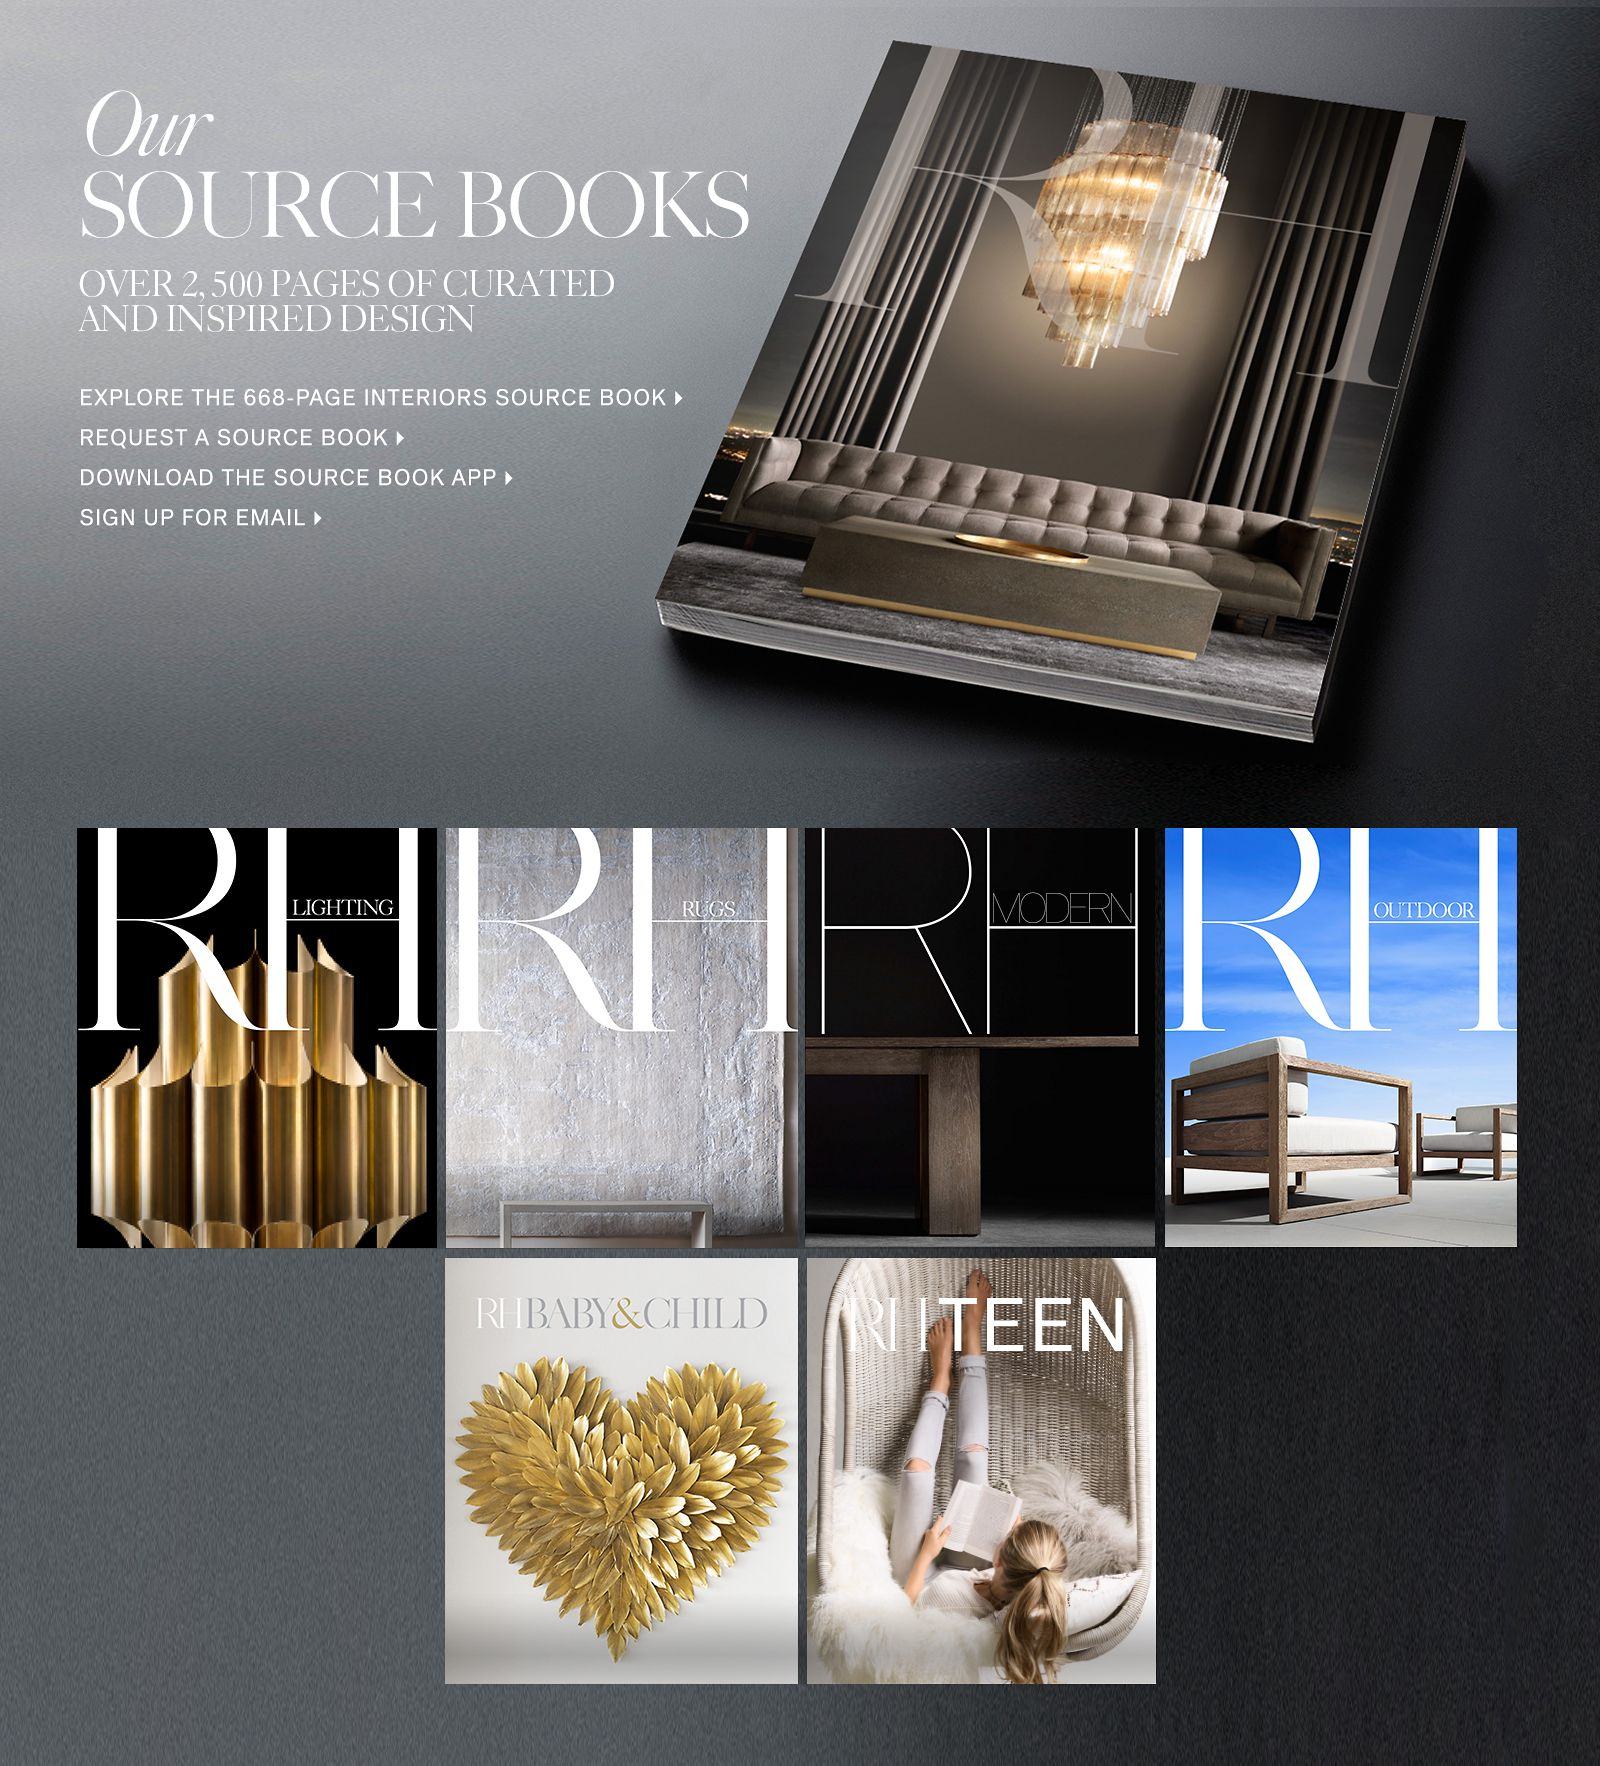 RH Annual Source Books